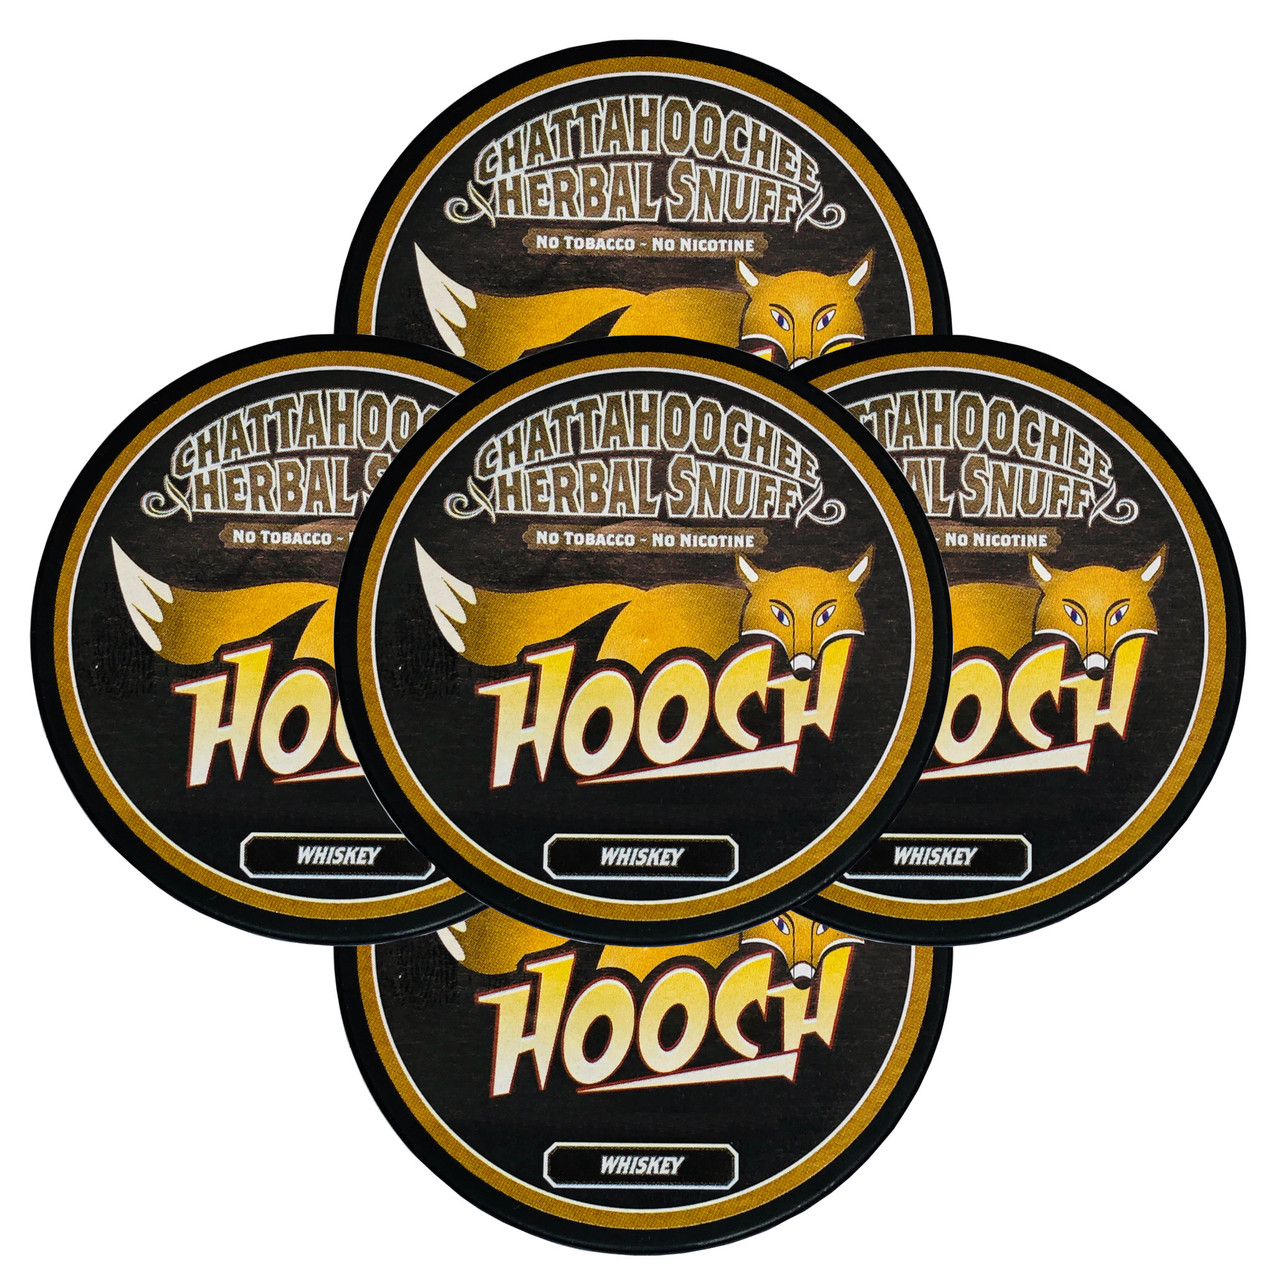 Hooch Herbal Snuff 5 Cans Whiskey